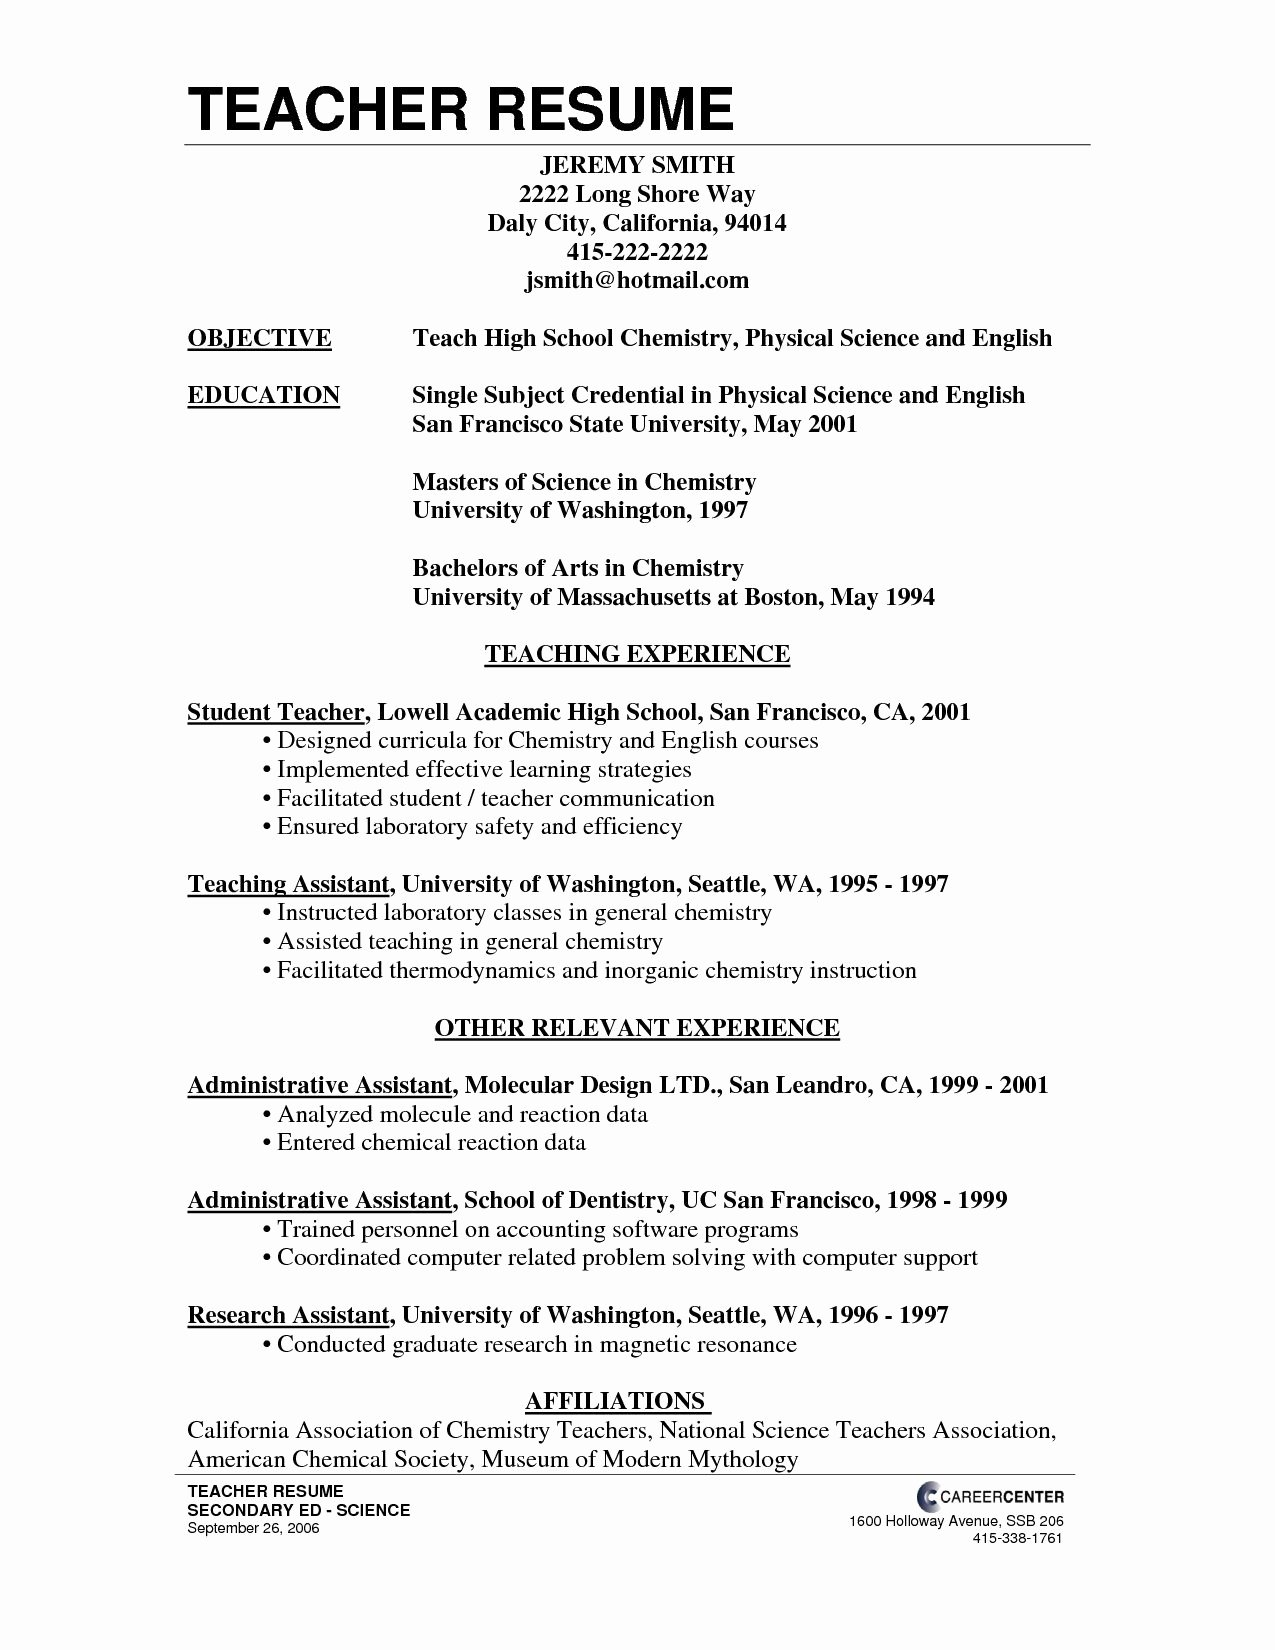 Resume Template for Teaching Fresh High School Teacher Resume